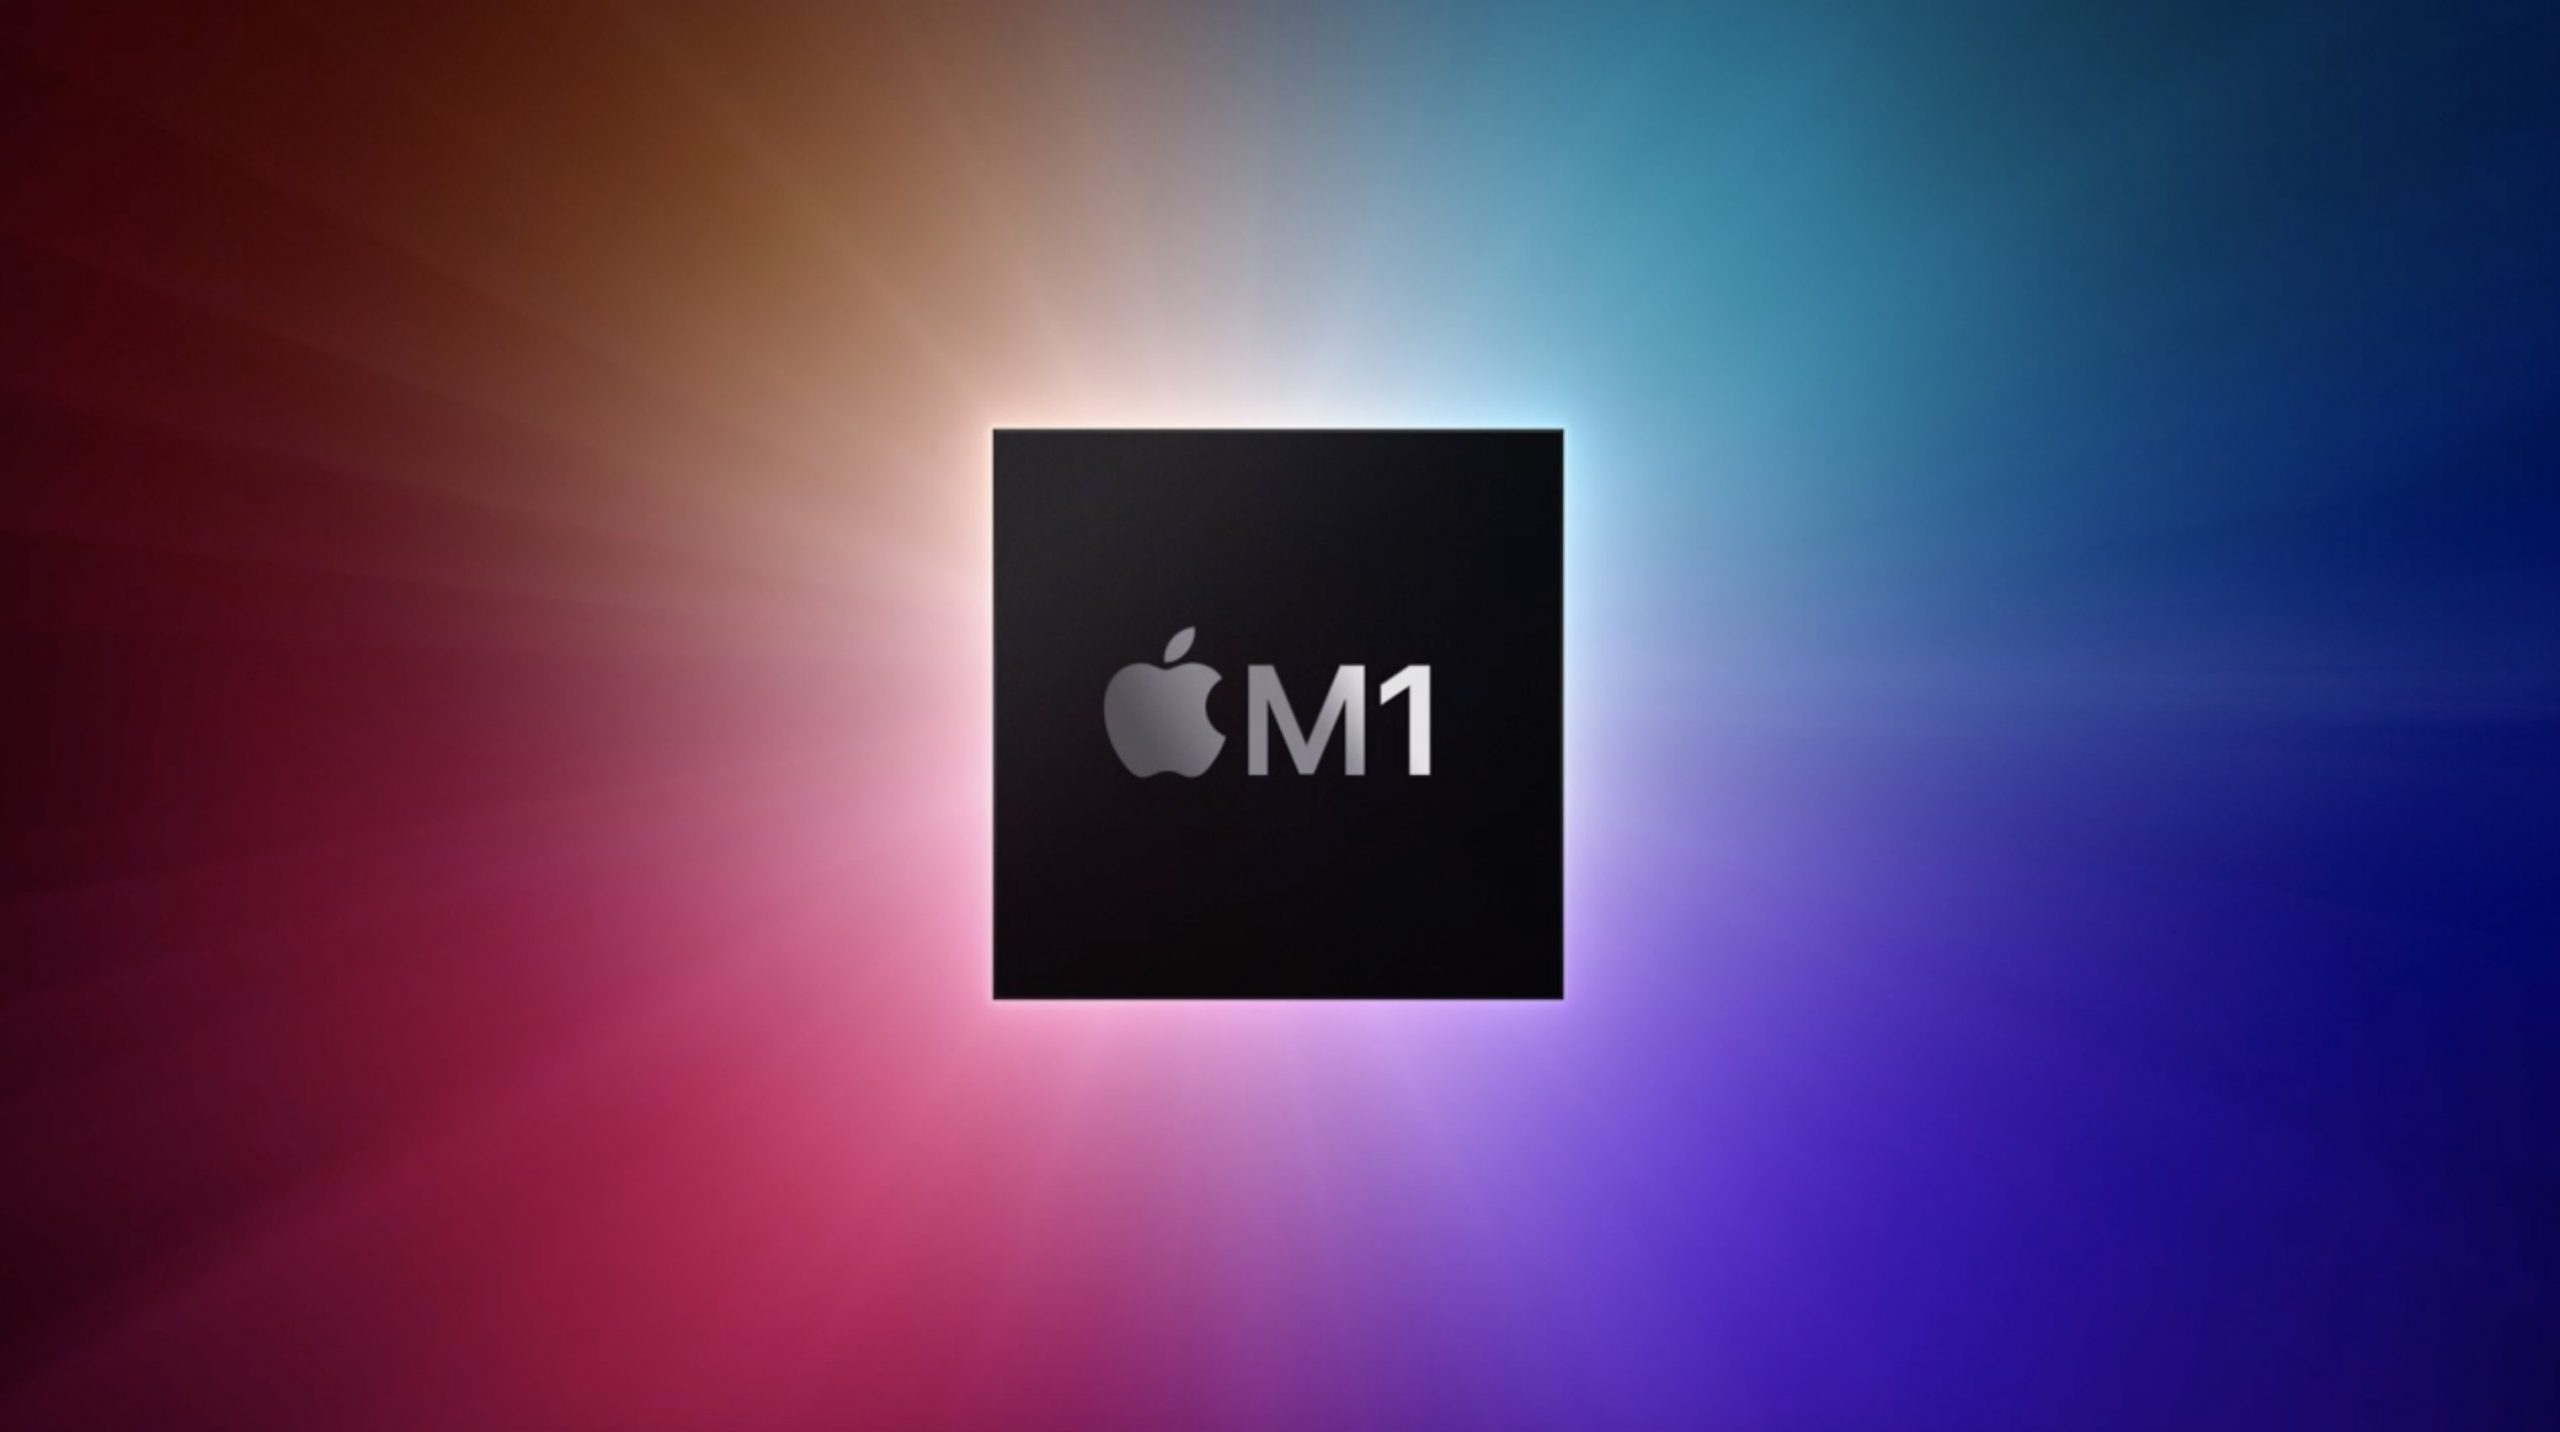 First Malware designed for Apple M1 chip has been discovered